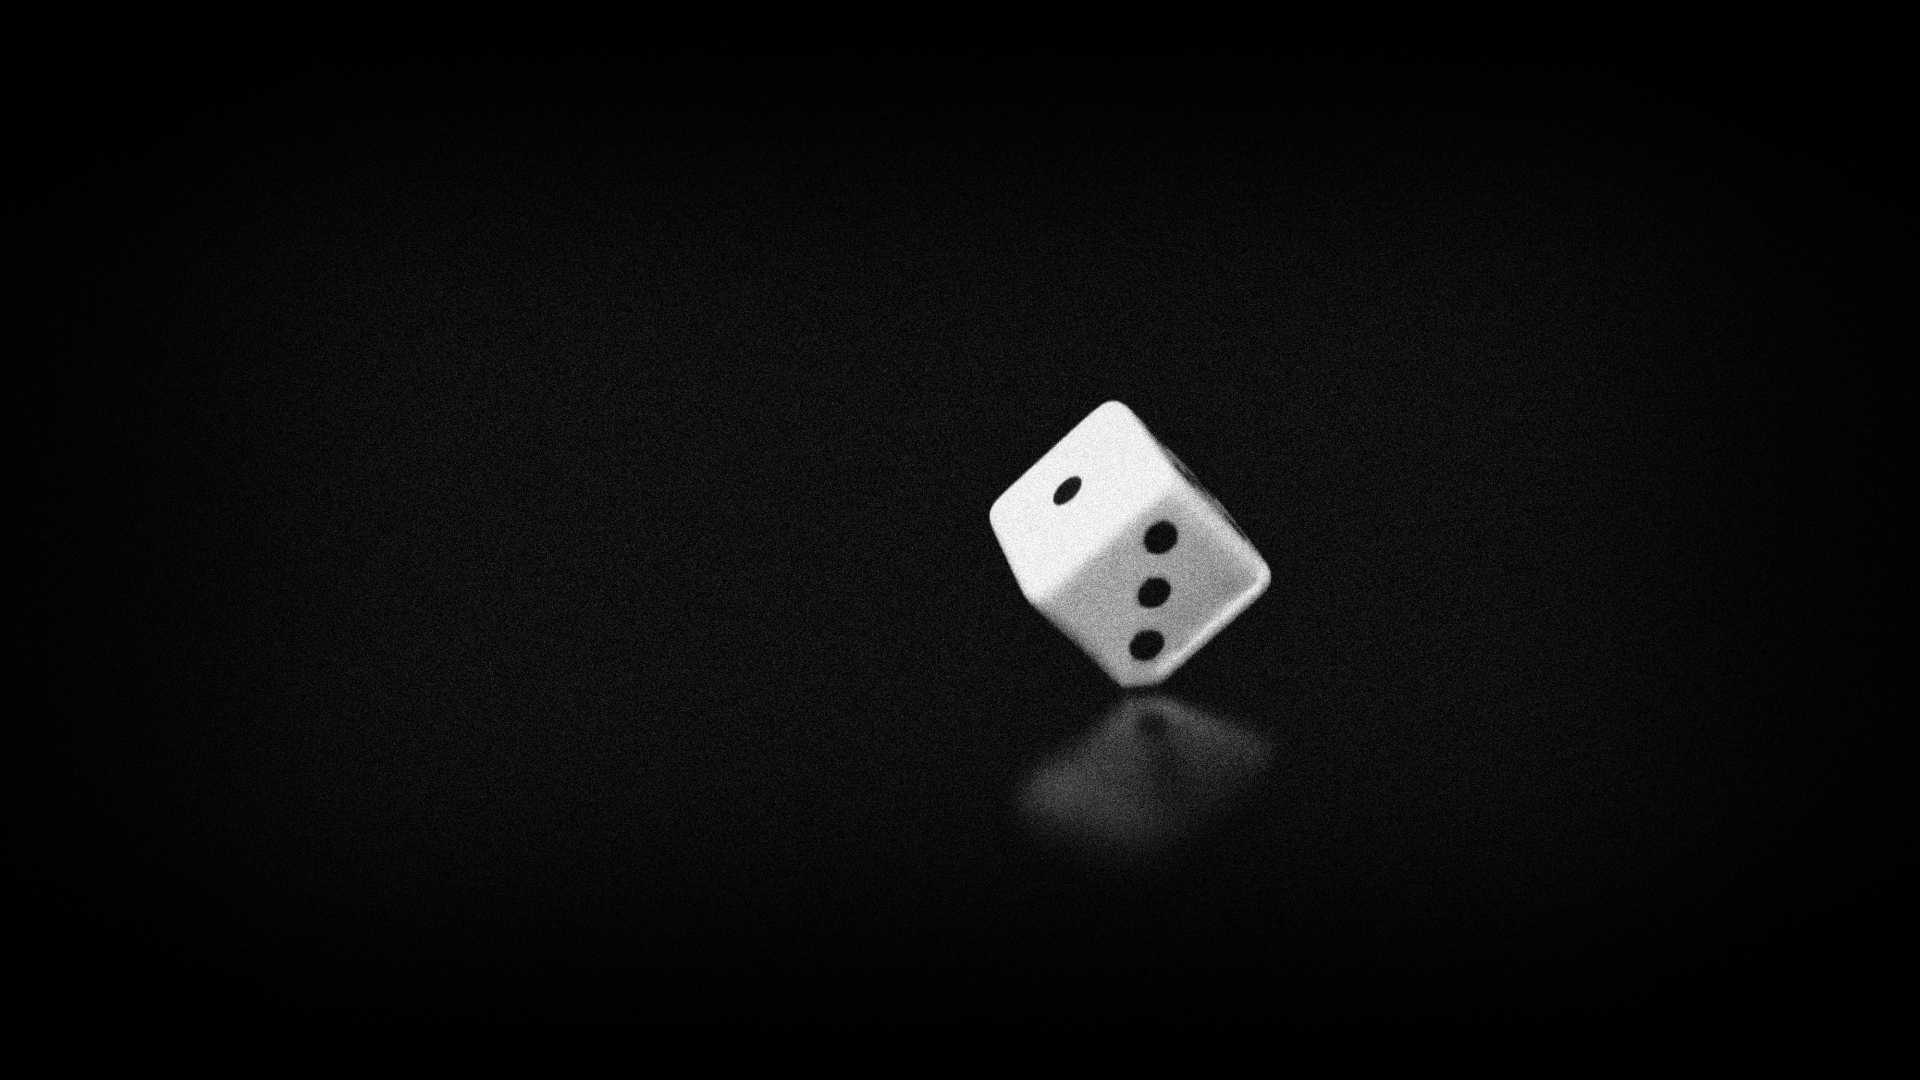 3D dice Black Wallpaper